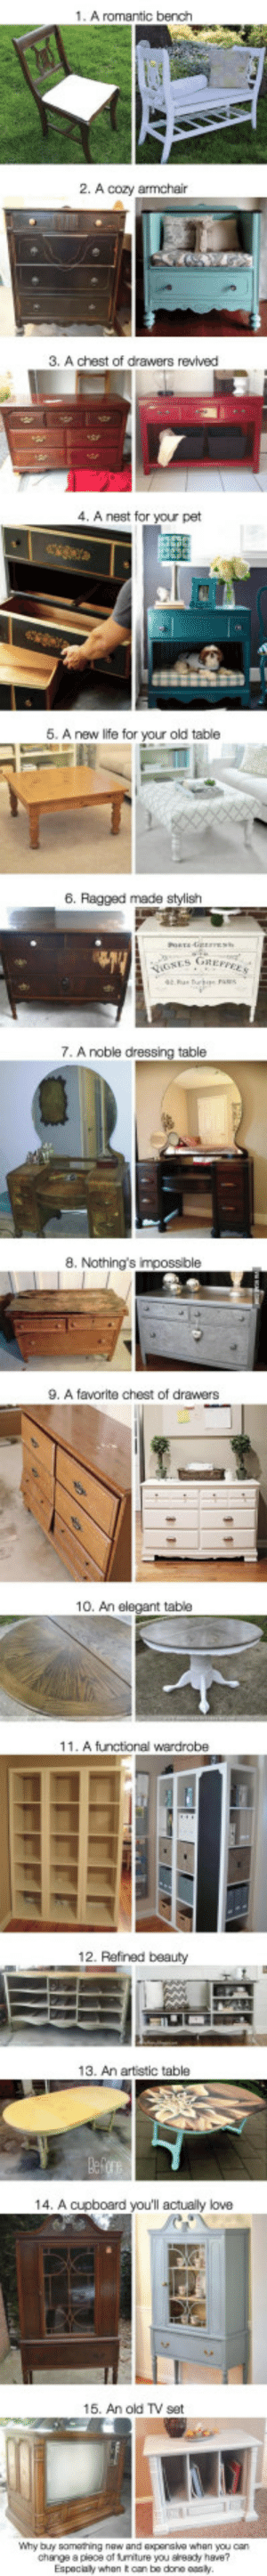 Life, Love, and Furniture: 1. A romantic bench  2. A cozy armchair  3. A chest of drawers revived  4. A nest for your pet  5. A new life for your old table  6. Ragged made stylish  GRE  7. A noble dressing table  8. Nothing's  9. A favorite chest of drawers  10. An elegant table  11. A functional wardrobe  12. Refinad beauty  13. An artistic table  14. A cupboard youll actually love  16. An old TV set  Why buy samathing now and expenave whan you can  change a plece of tumiture you sready have?  Espocaly when t oan bo dono oasly 15 brilliant ideas for giving new life to old furniture